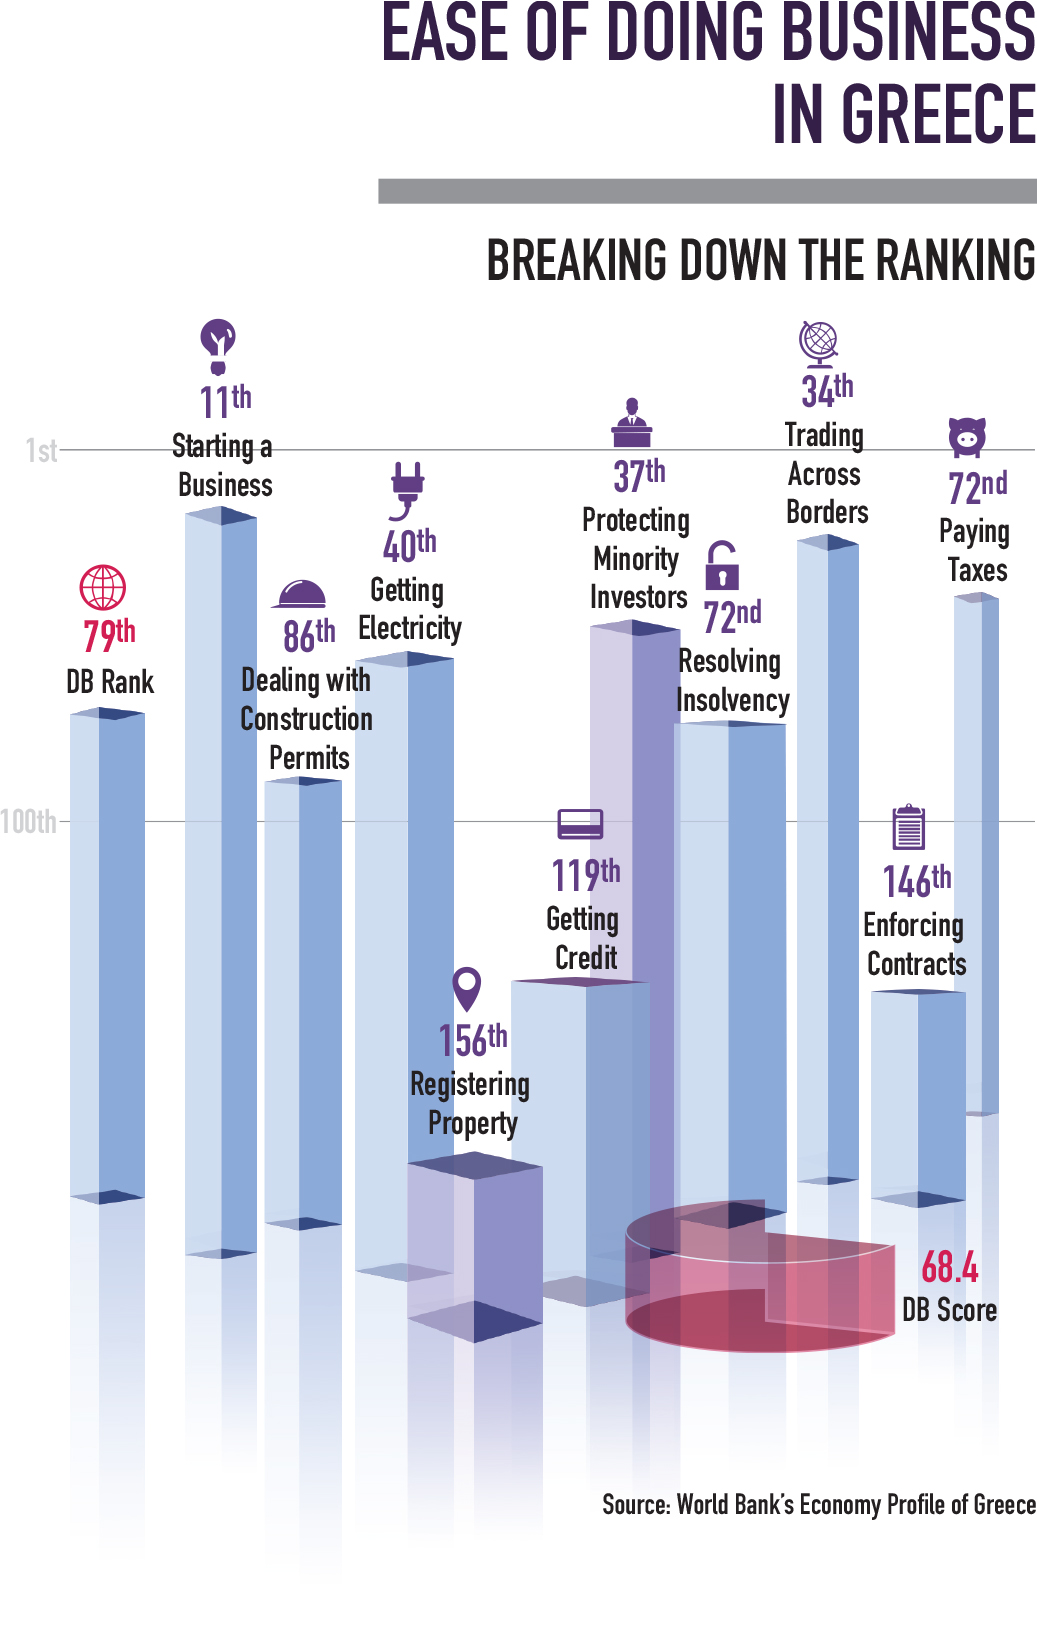 Ease of doing business in Greece infographic